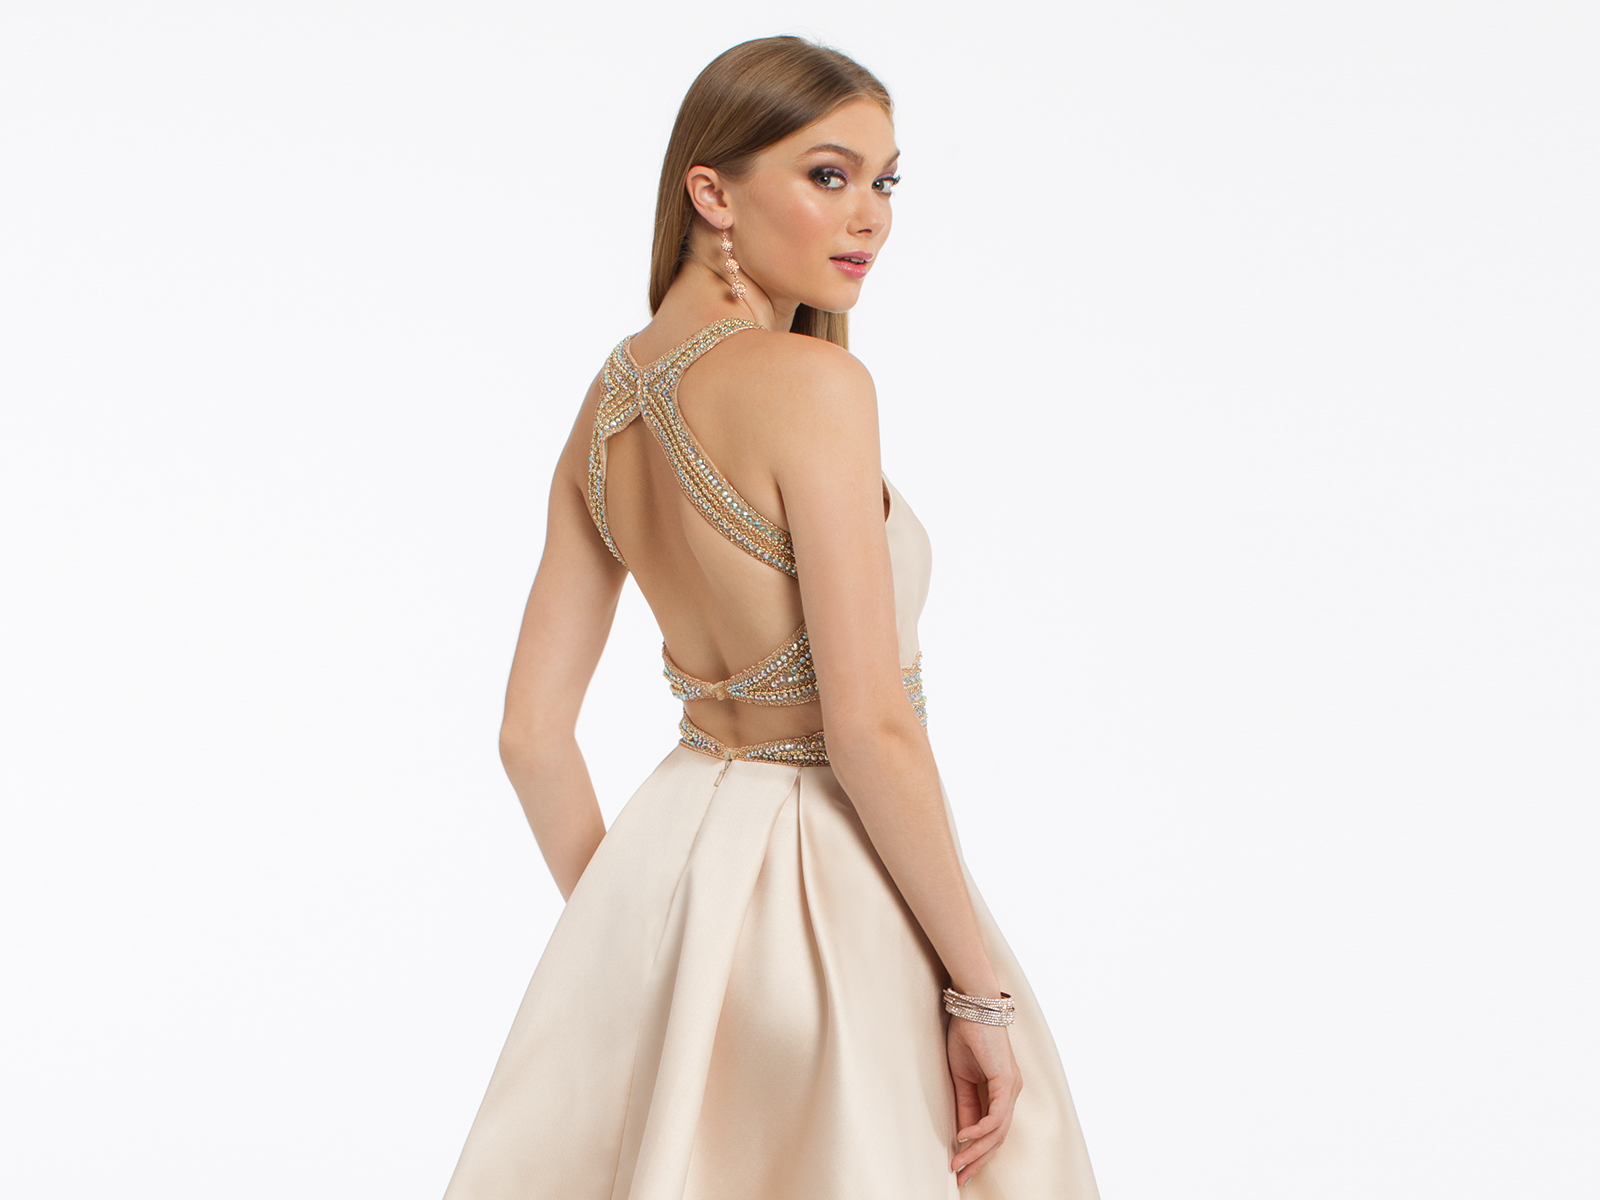 Gold Satin Homecoming Dress by Camille La Vie